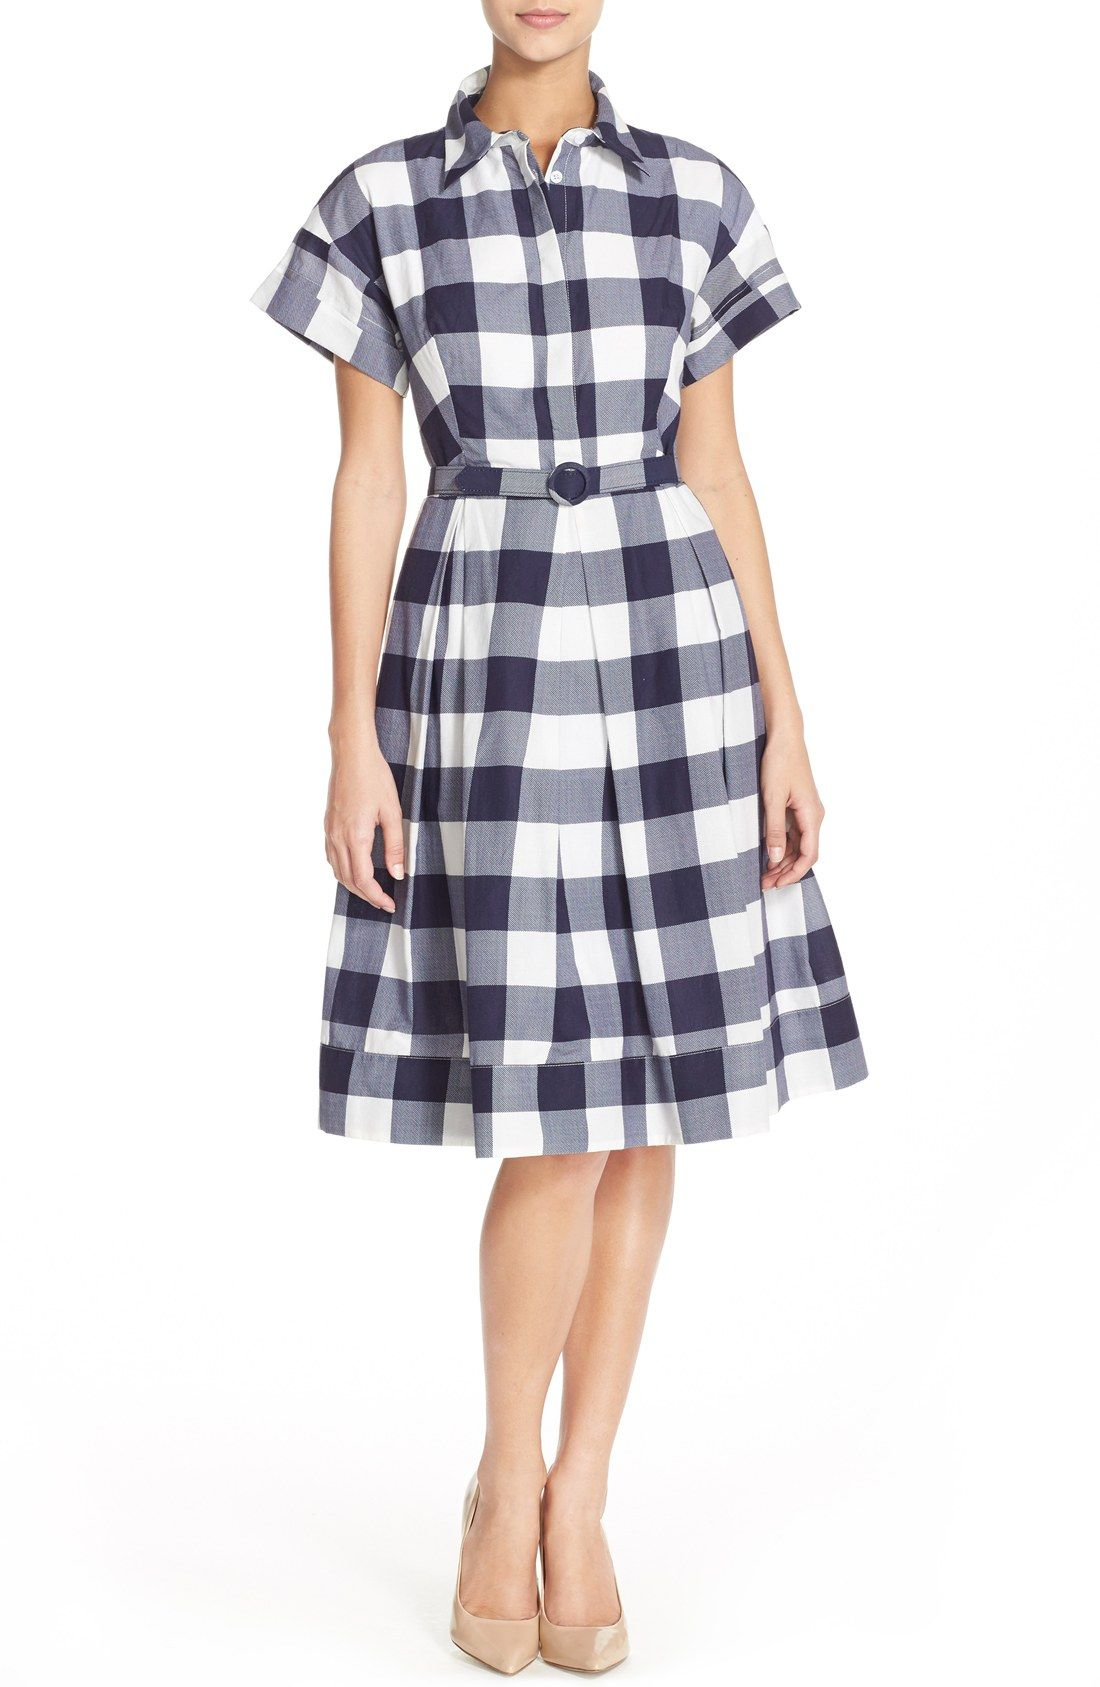 ff01eab819a Free shipping and returns on Eliza J Gingham Shirt Dress (Regular   Petite)  at Nordstrom.com. Channel the  50s in this gingham check fit-and-flare dress